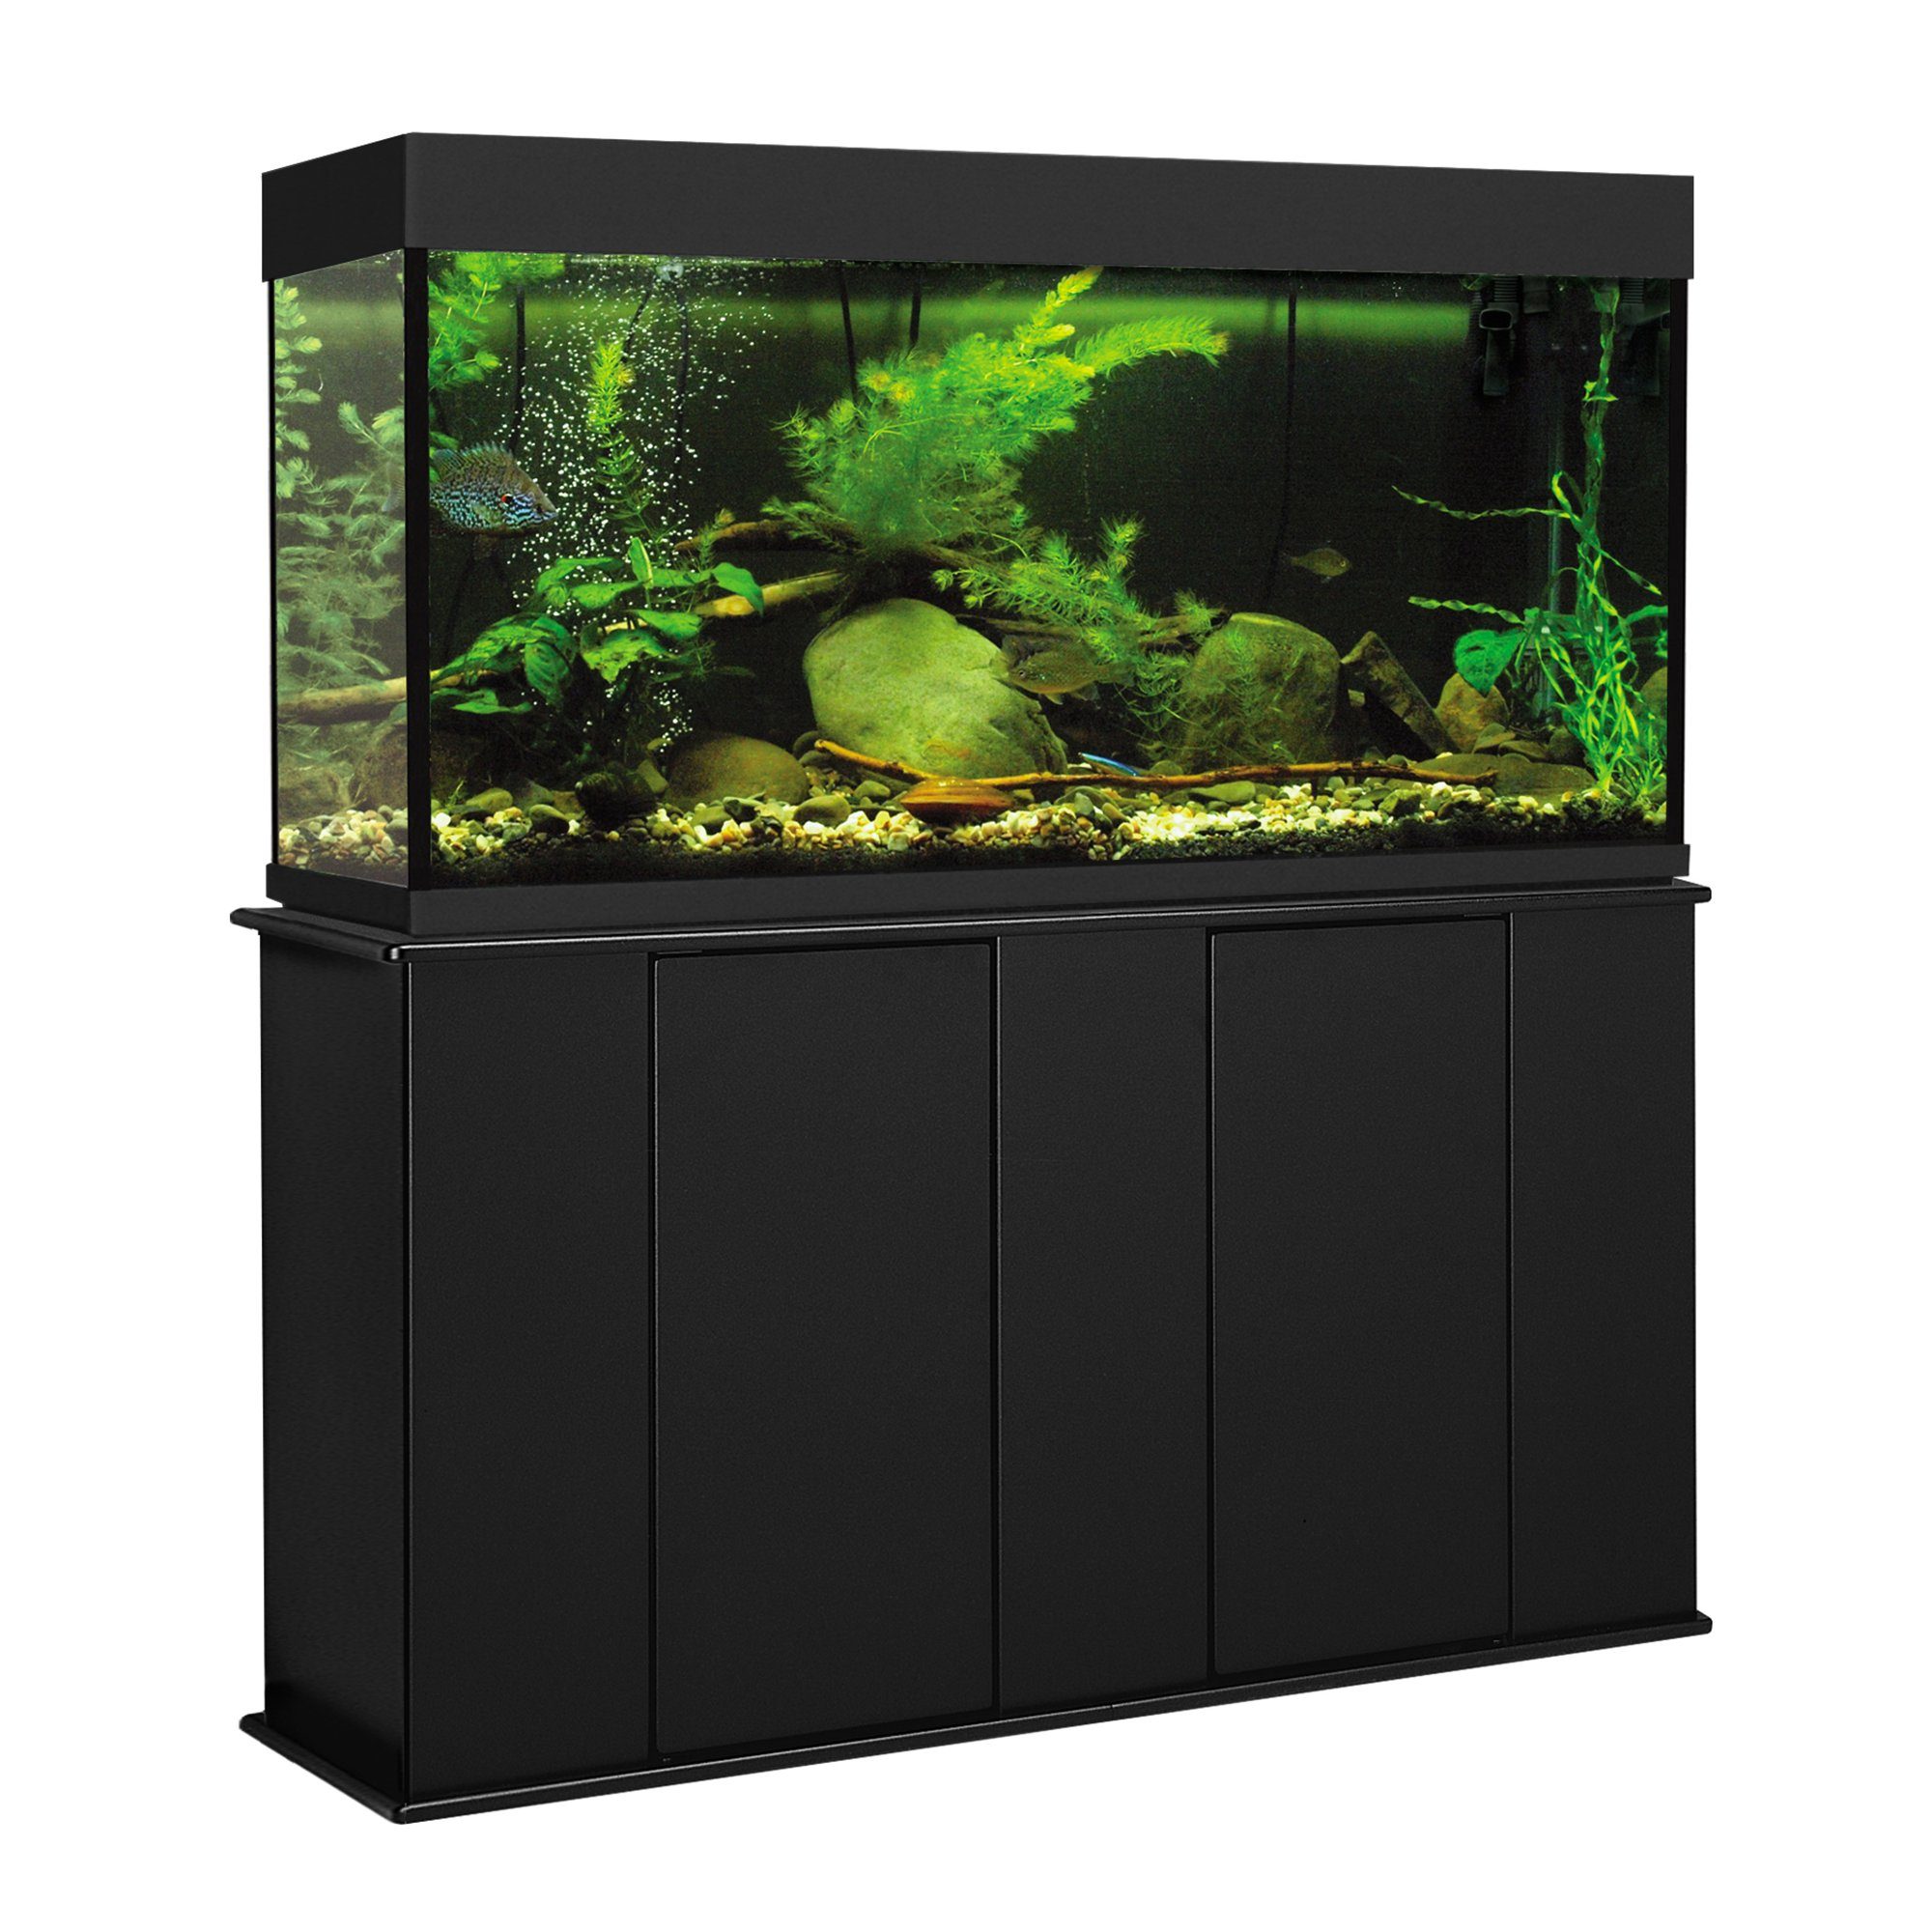 Aquatic Fundamentals 55 Gallon Upright Aquarium Stand  sc 1 st  Petco & Aquarium Stands Canopies u0026 Cabinets | Petco Store